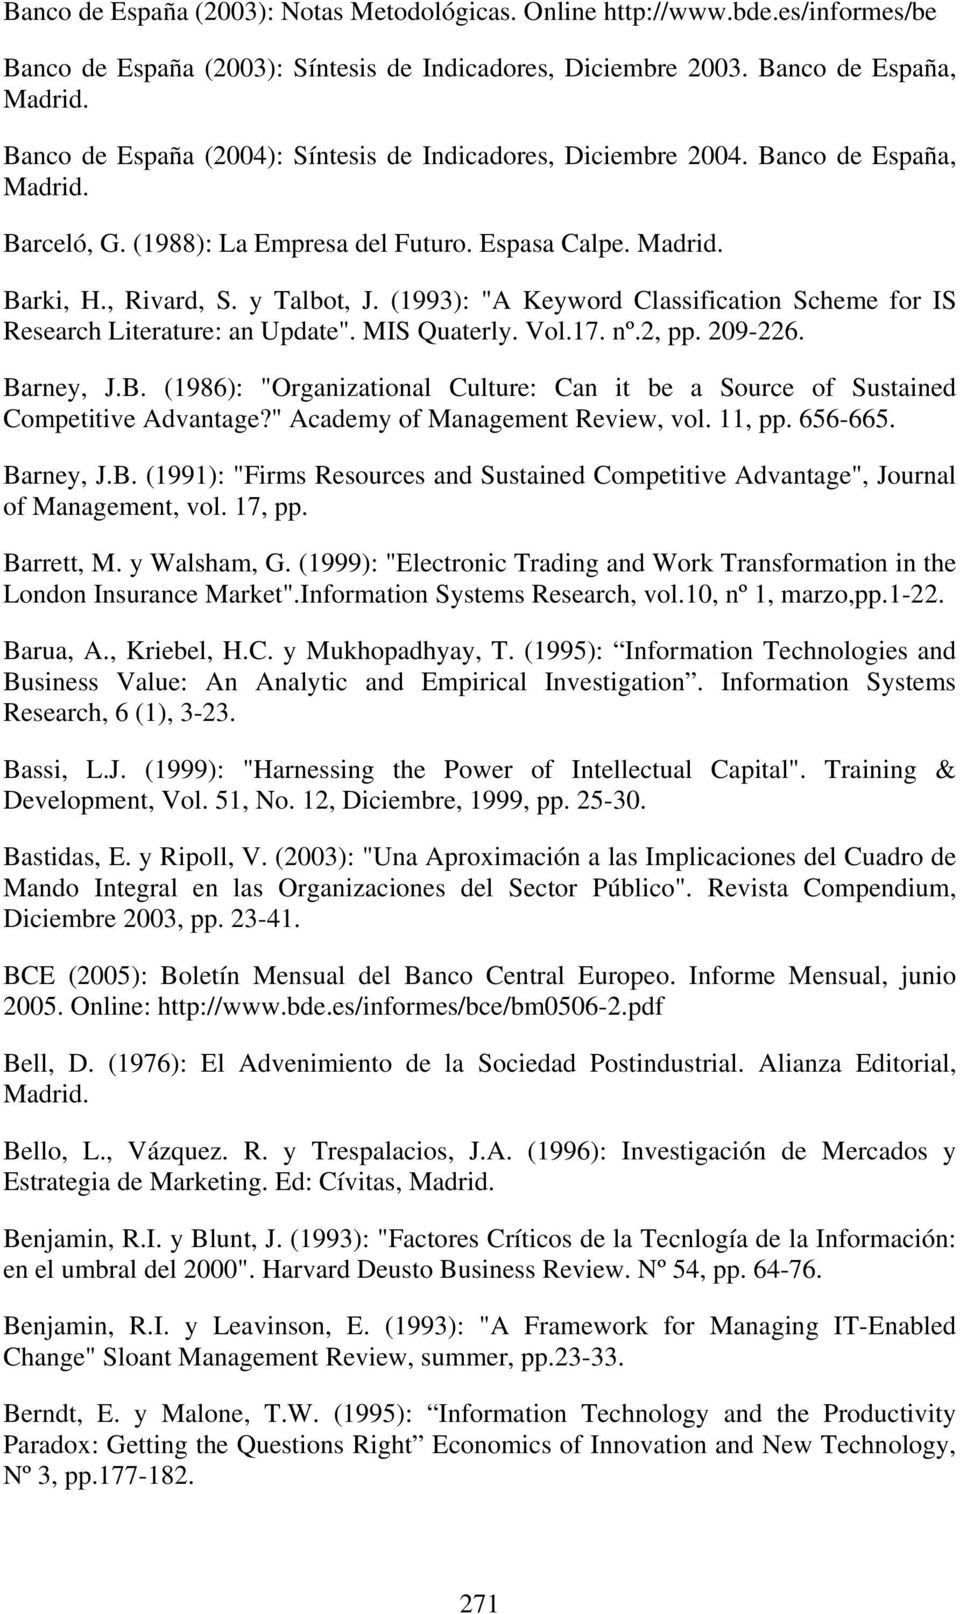 "(1993): ""A Keyword Classification Scheme for IS Research Literature: an Update"". MIS Quaterly. Vol.17. nº.2, pp. 209-226. Ba"